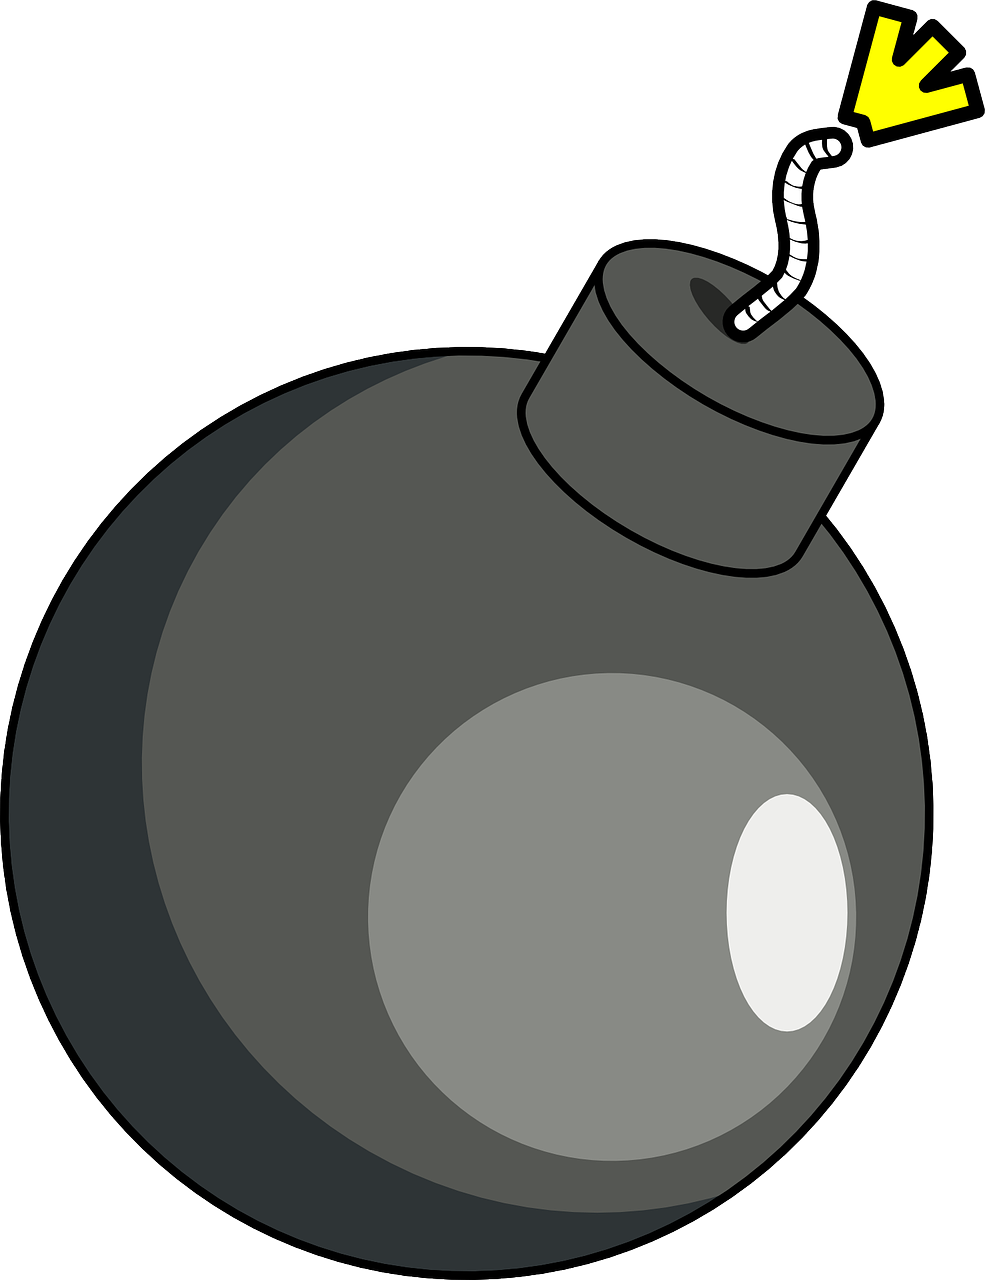 png library library Bomb clipart wired. Clip art images panda